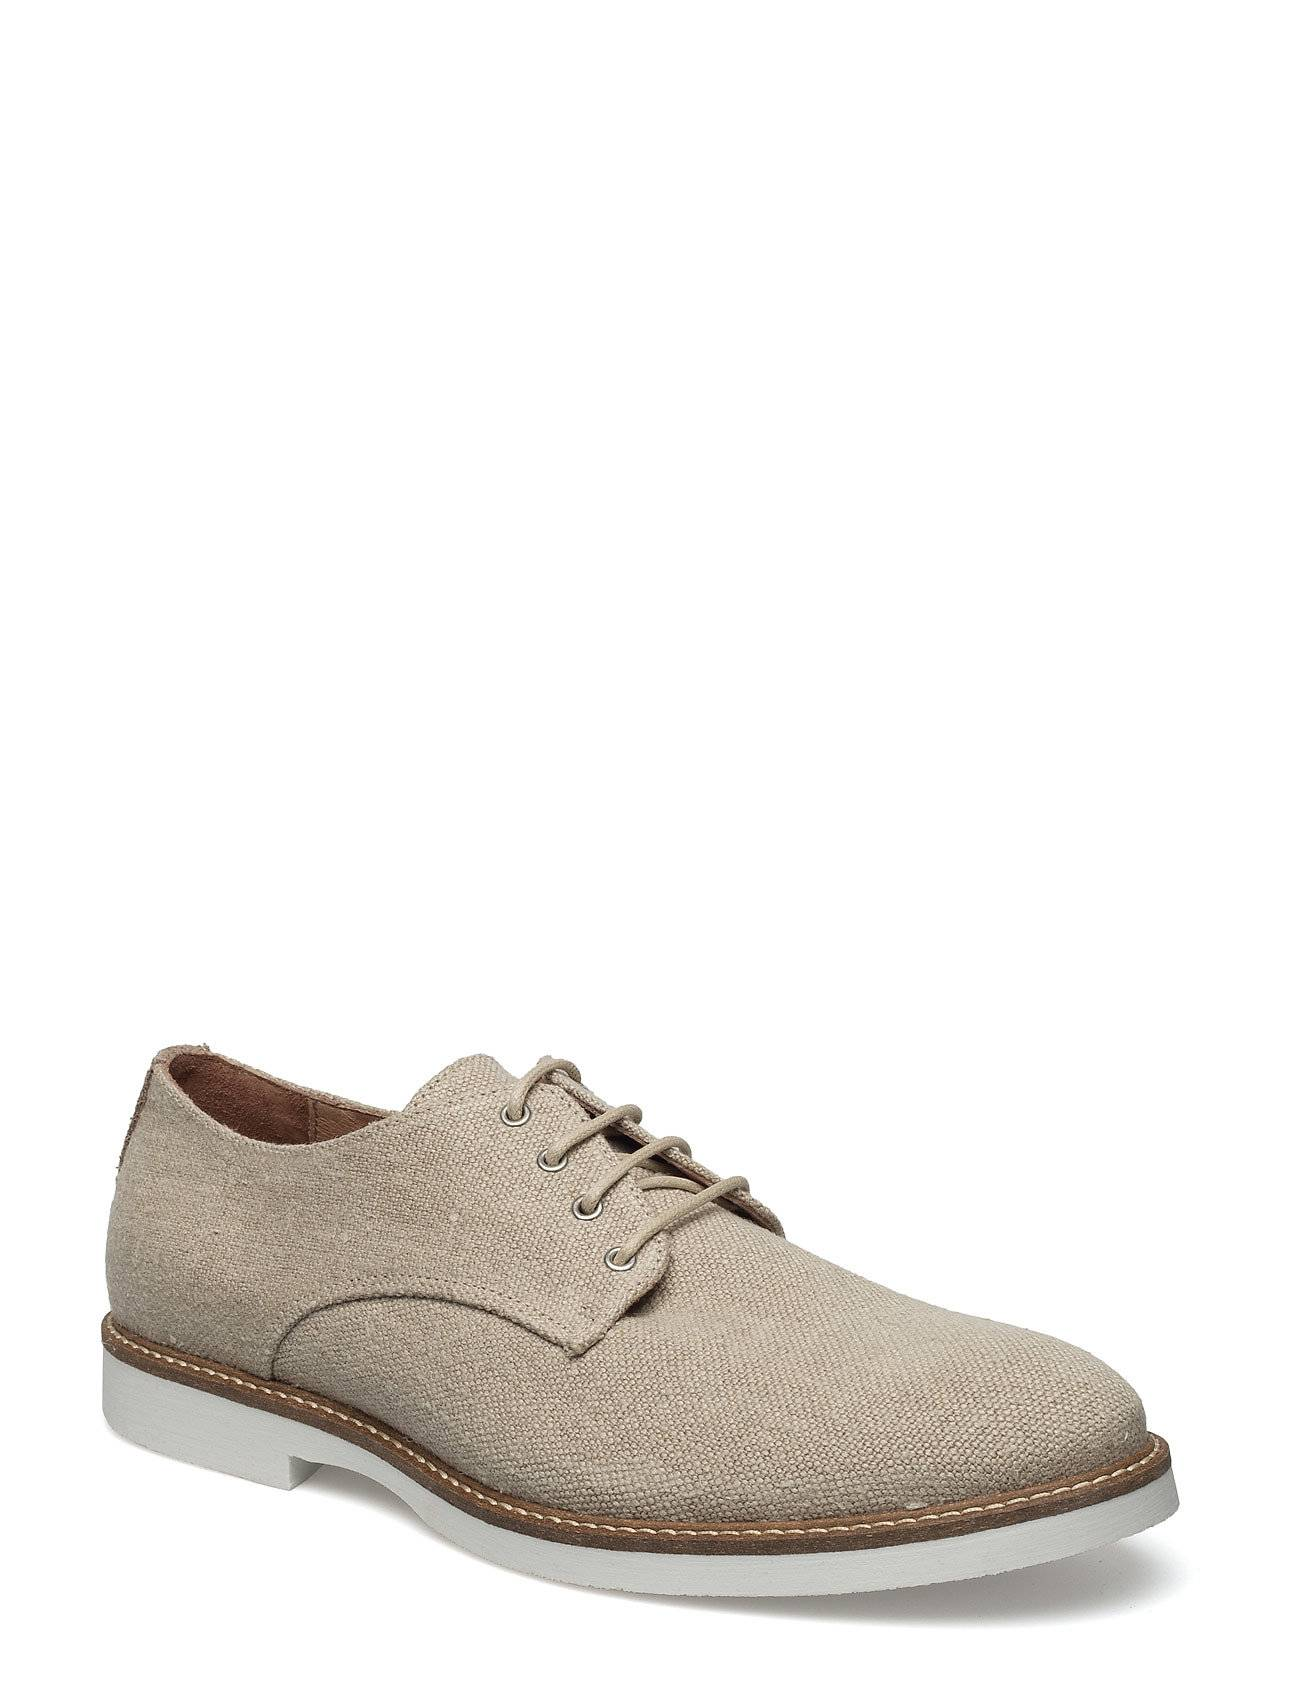 Selected Homme Shdaxel Derby Shoe